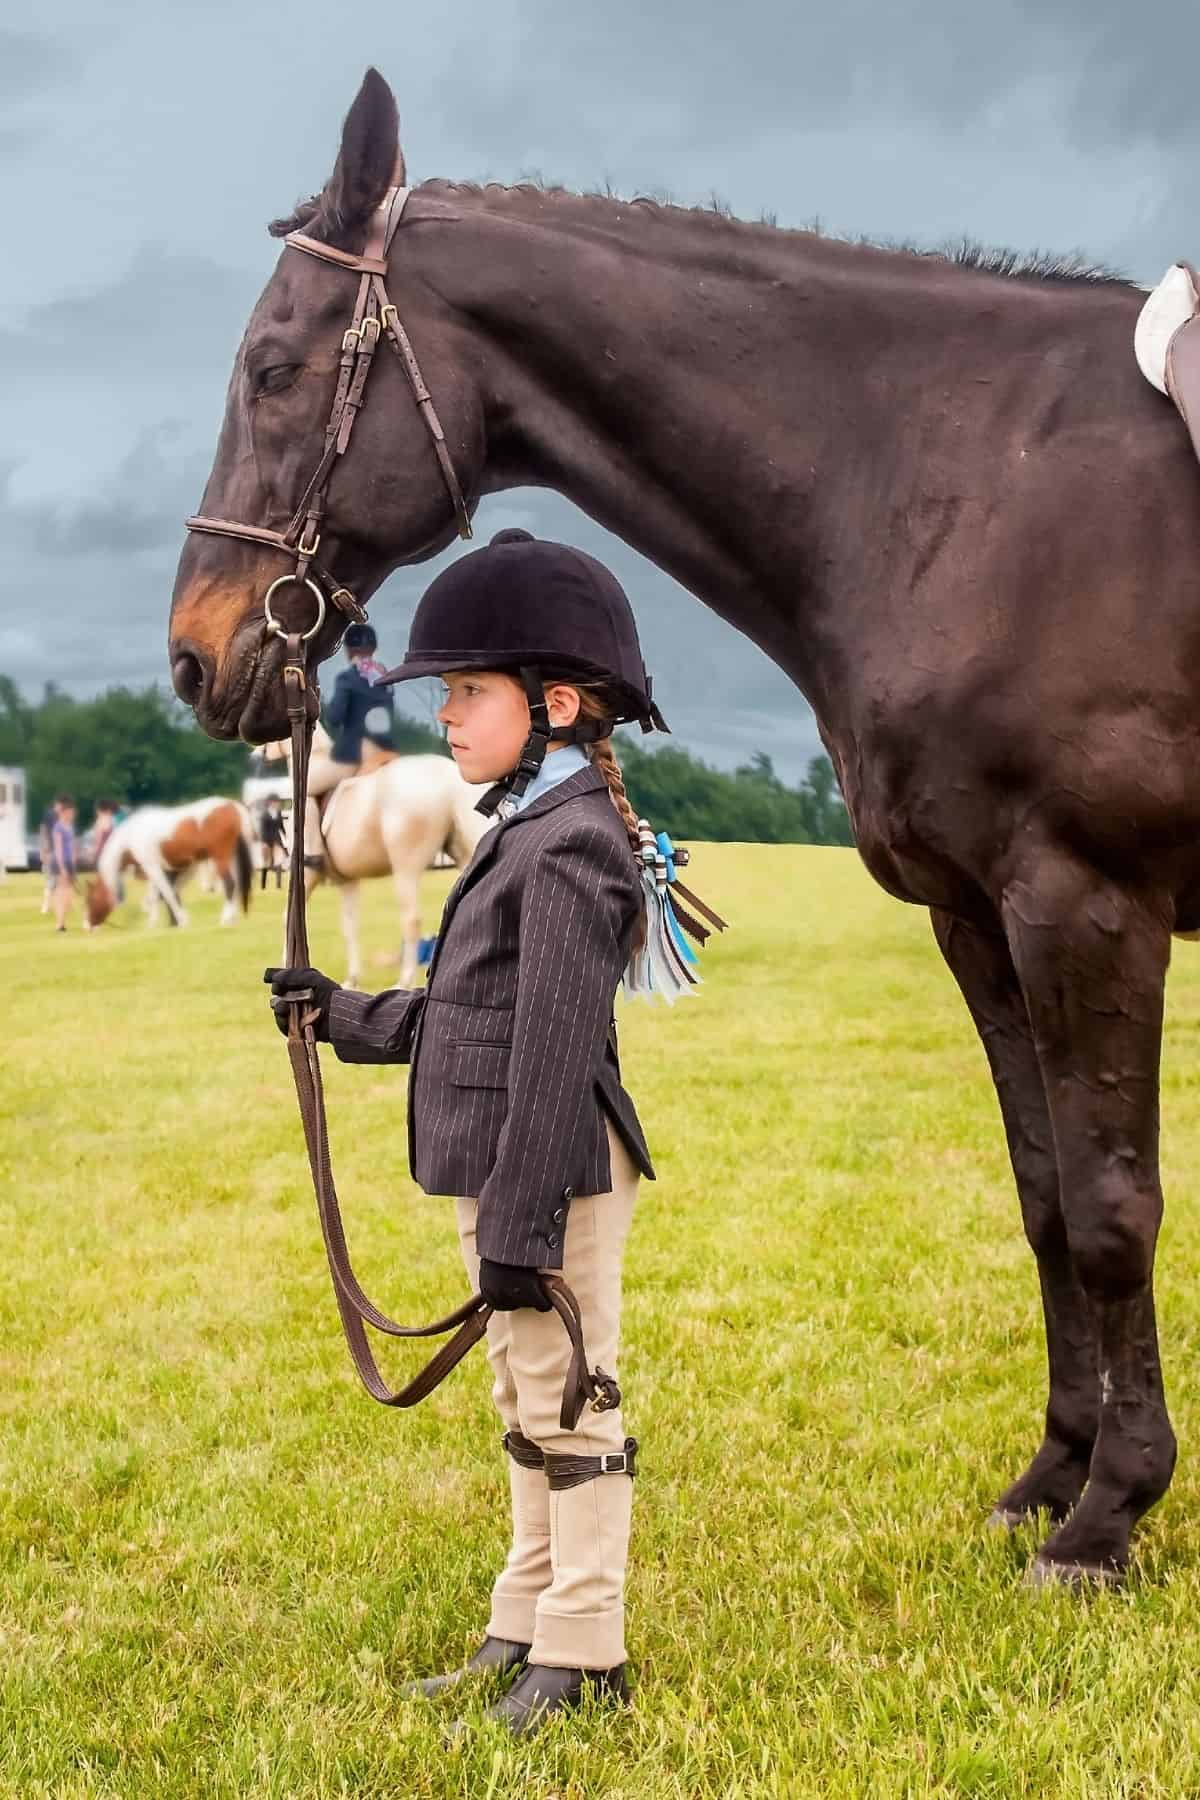 small girl in riding outfit with helmet holding reigns of brown horse